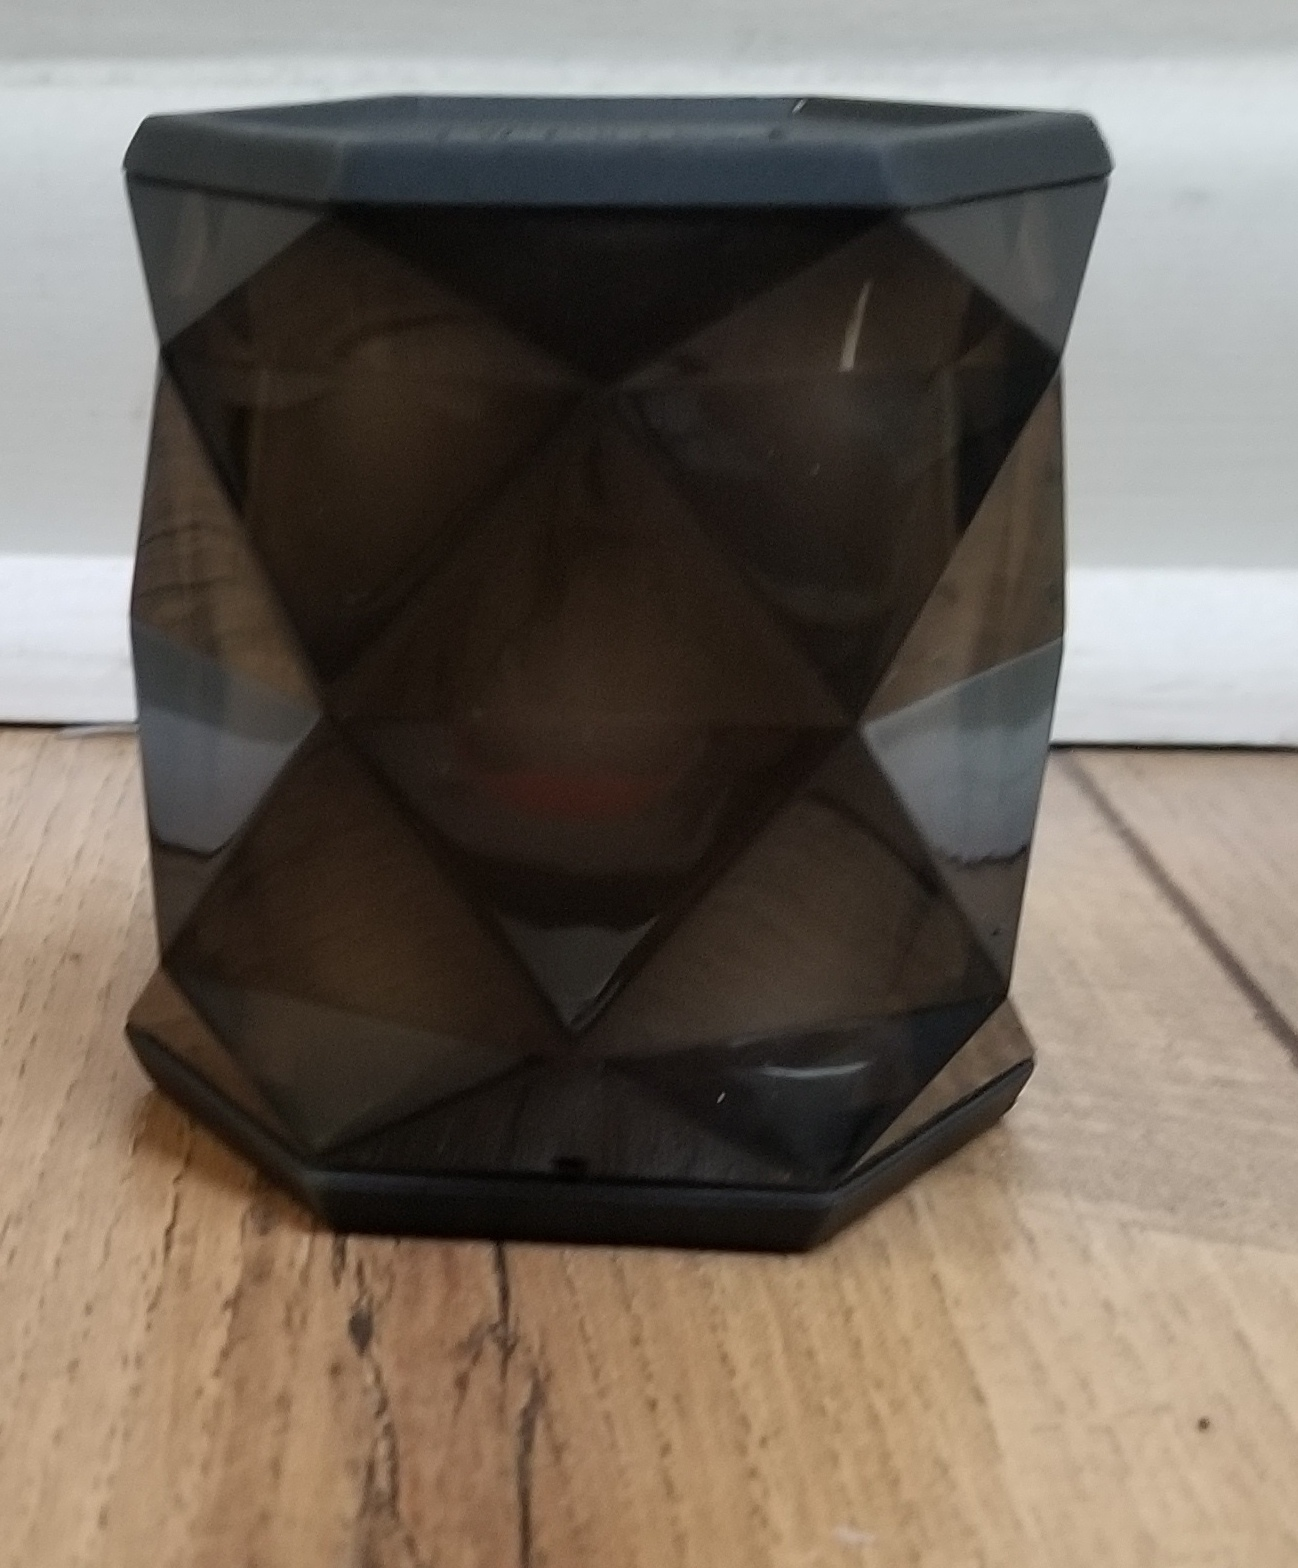 IHOME - IBT68 - COLOR CHANGING - BLUETOOTH SPEAKER